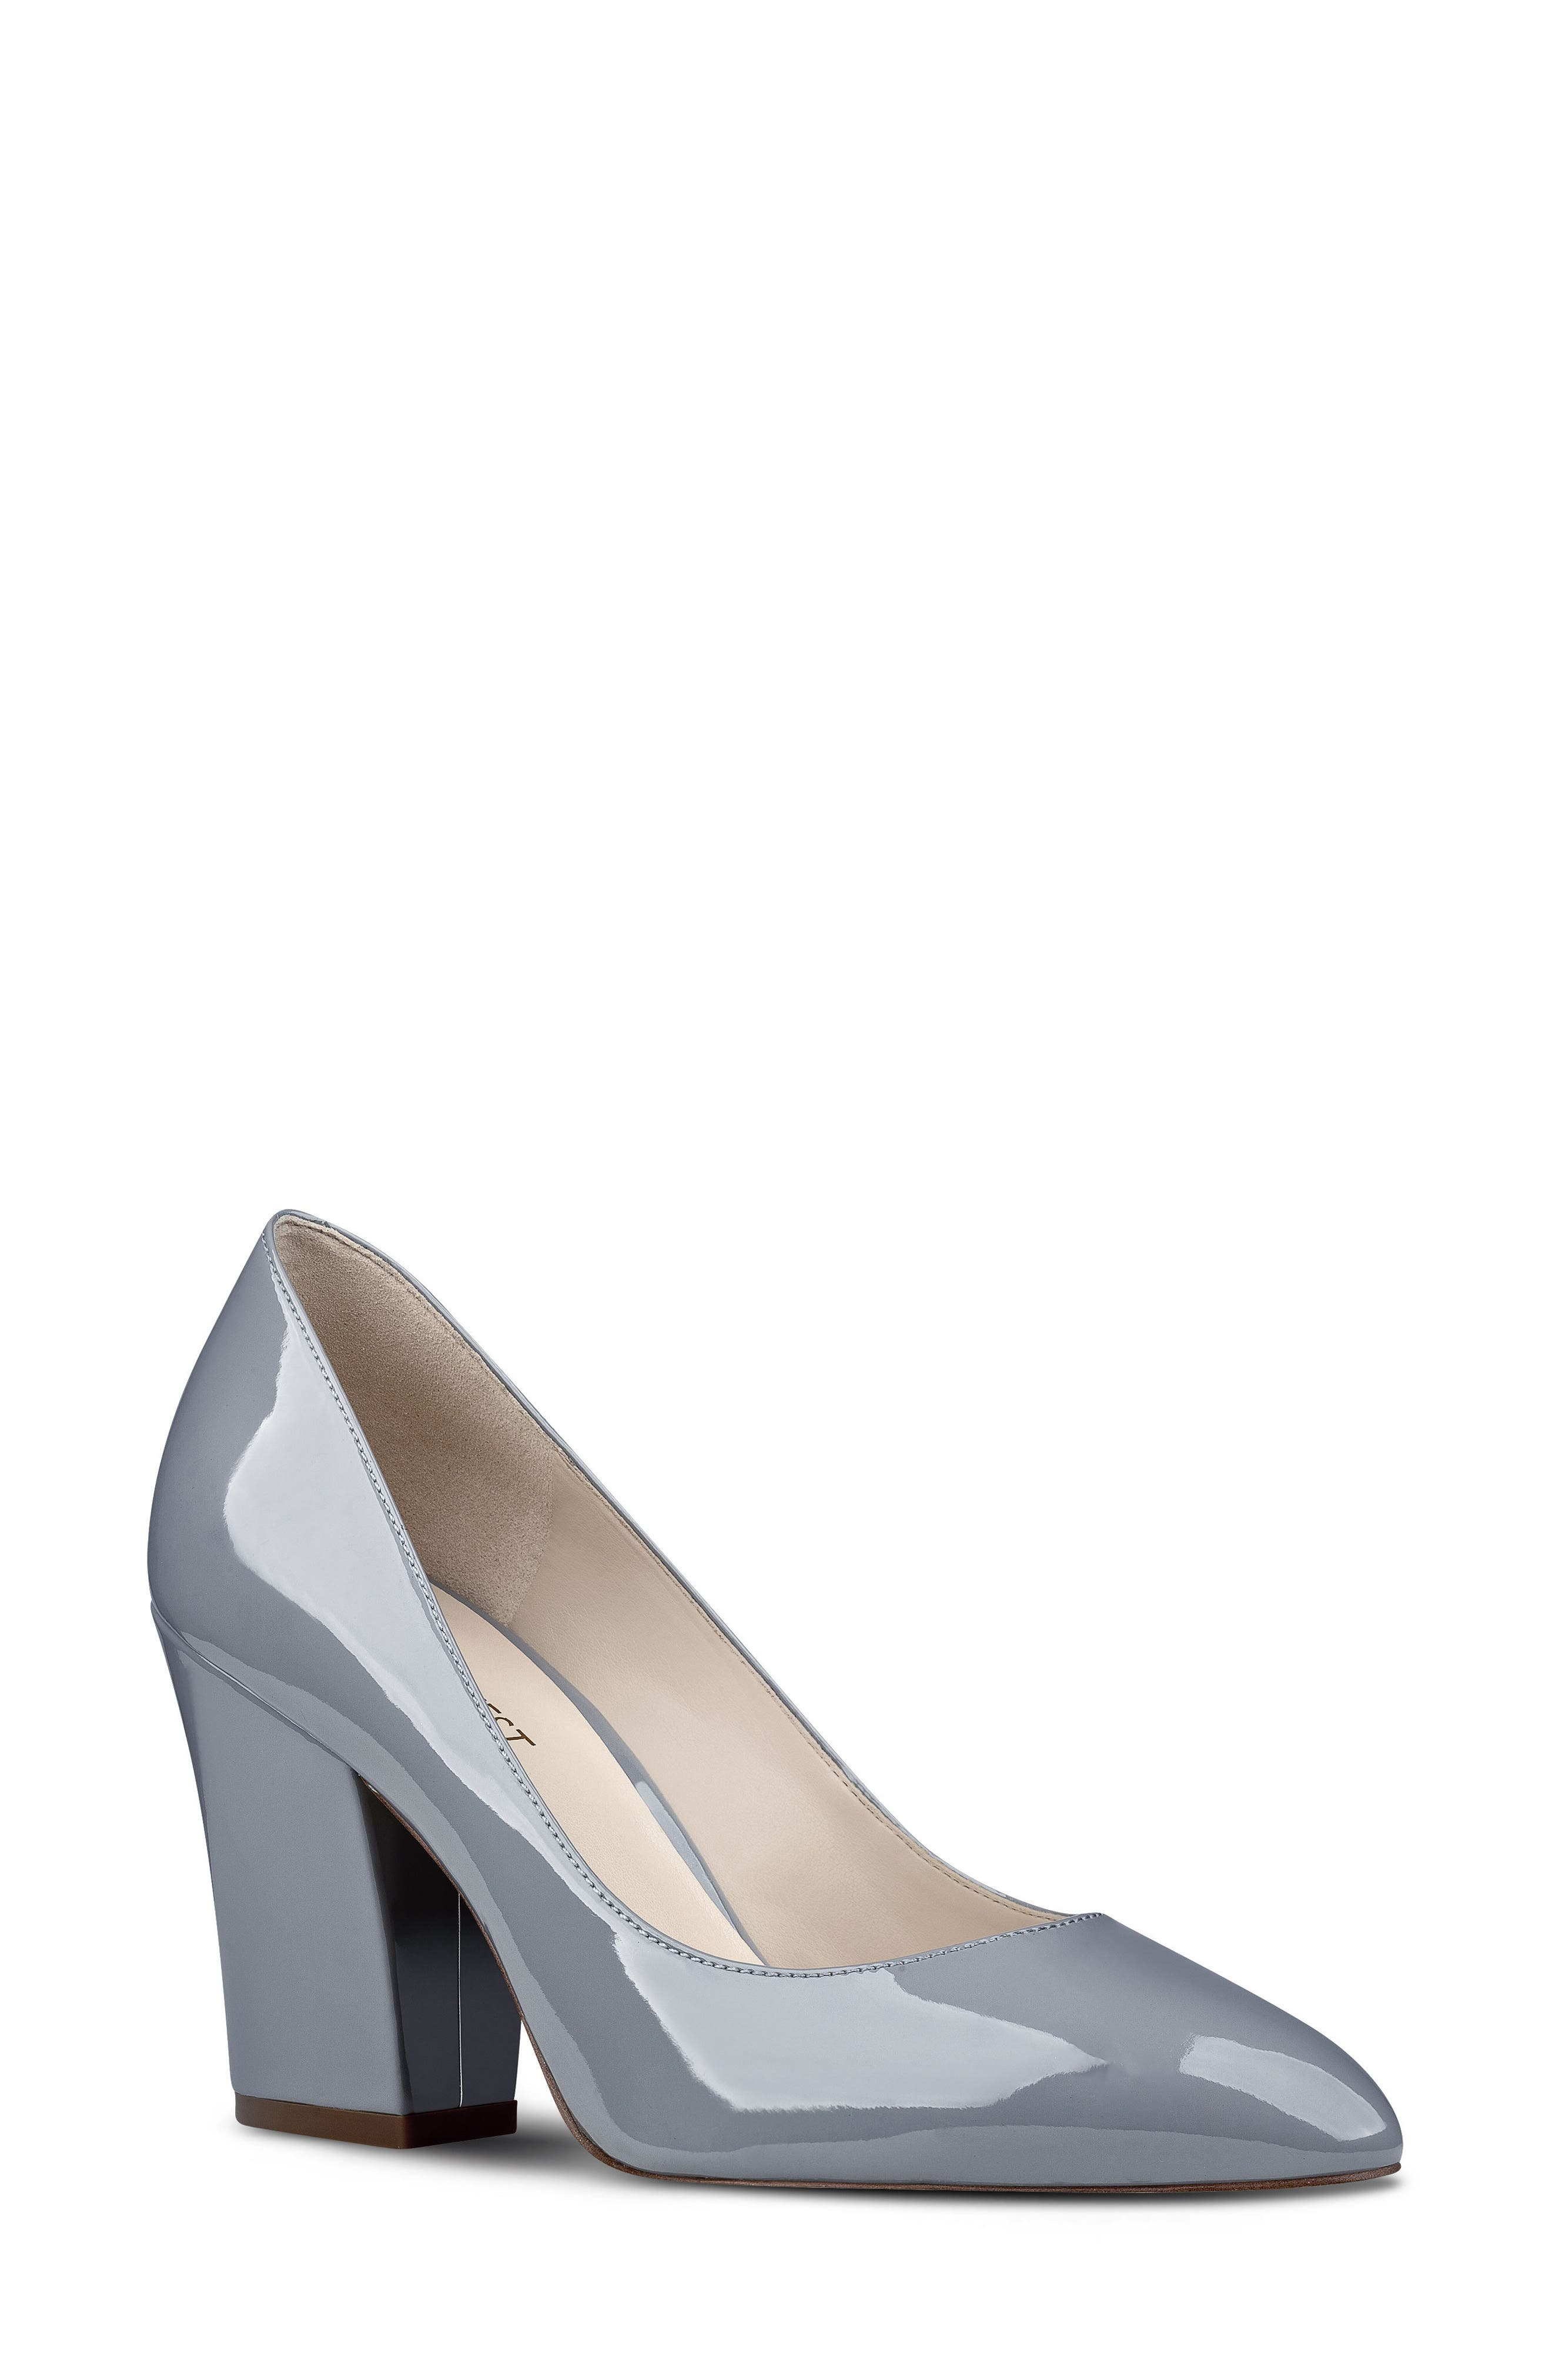 Scheila Pointy Toe Pump,                         Main,                         color, GREY FAUX LEATHER